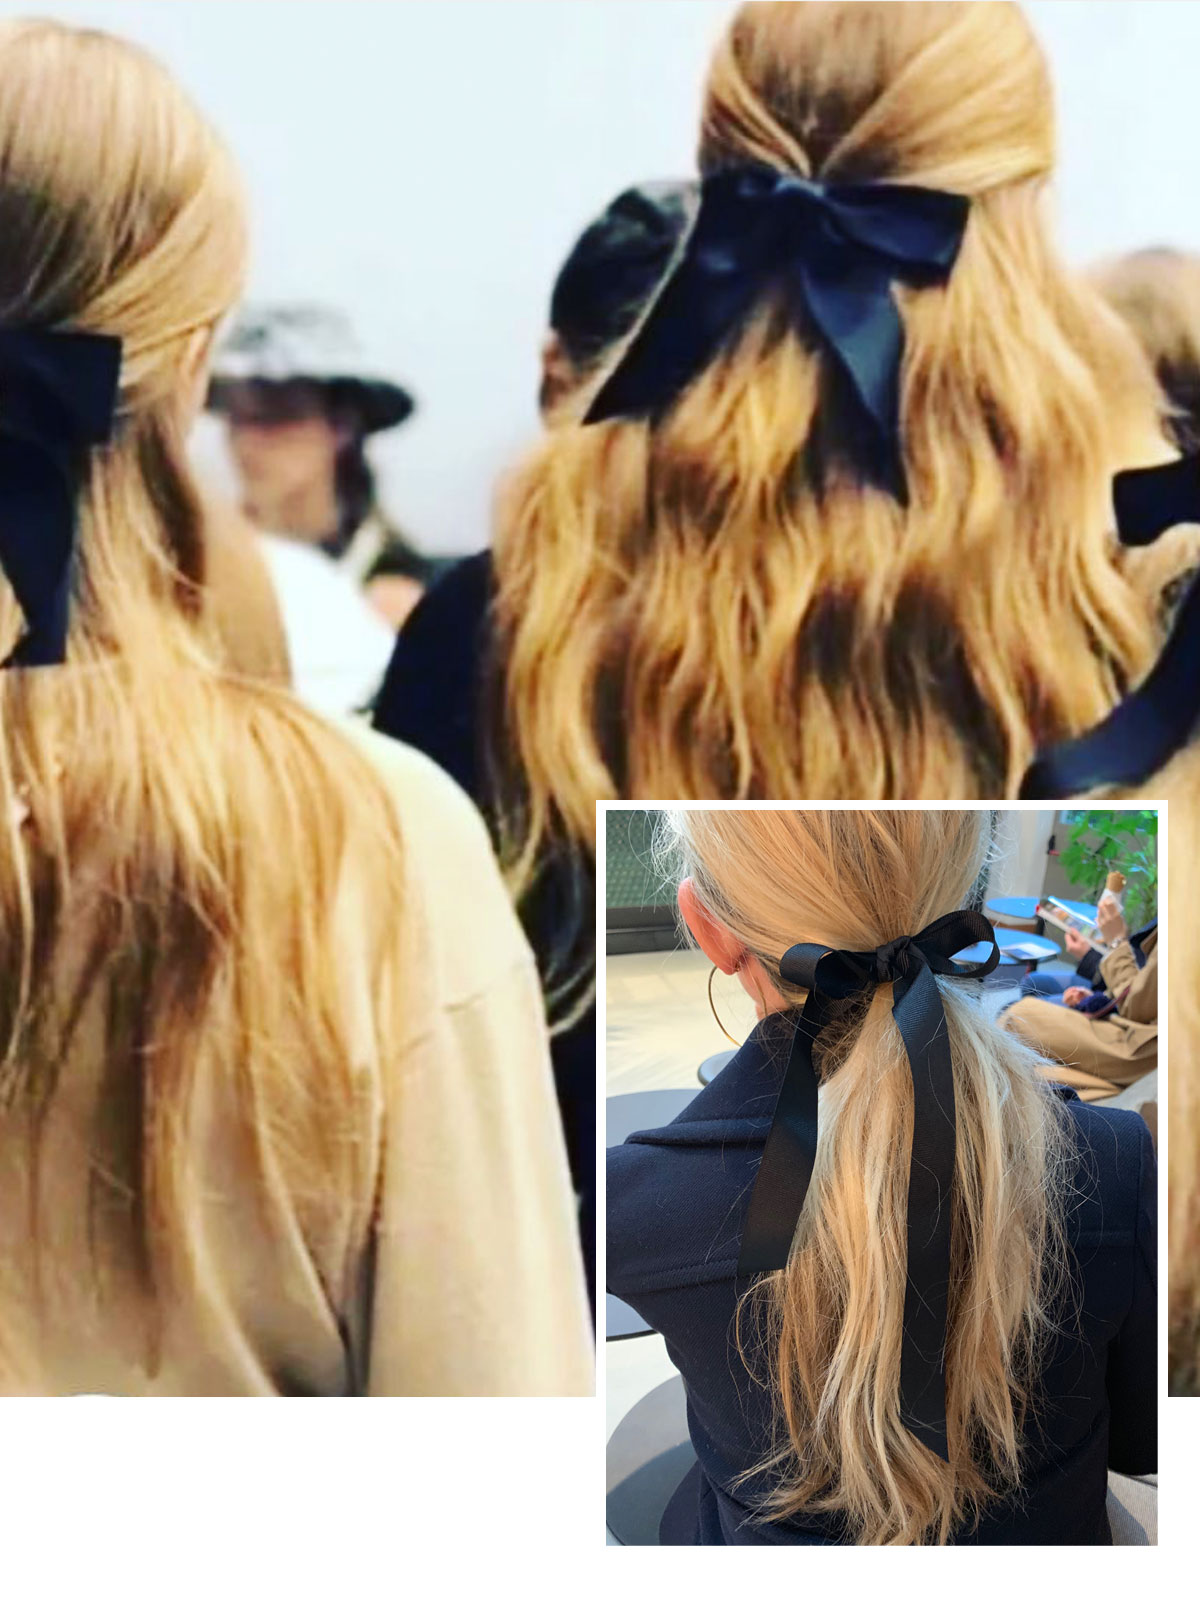 aec18c6843a47 I'm about to beat my little drum, again, about hair bows — they're  everywhere and look great. Knowing that I'm a fanatic, my friend  @kristina_oneill sent ...